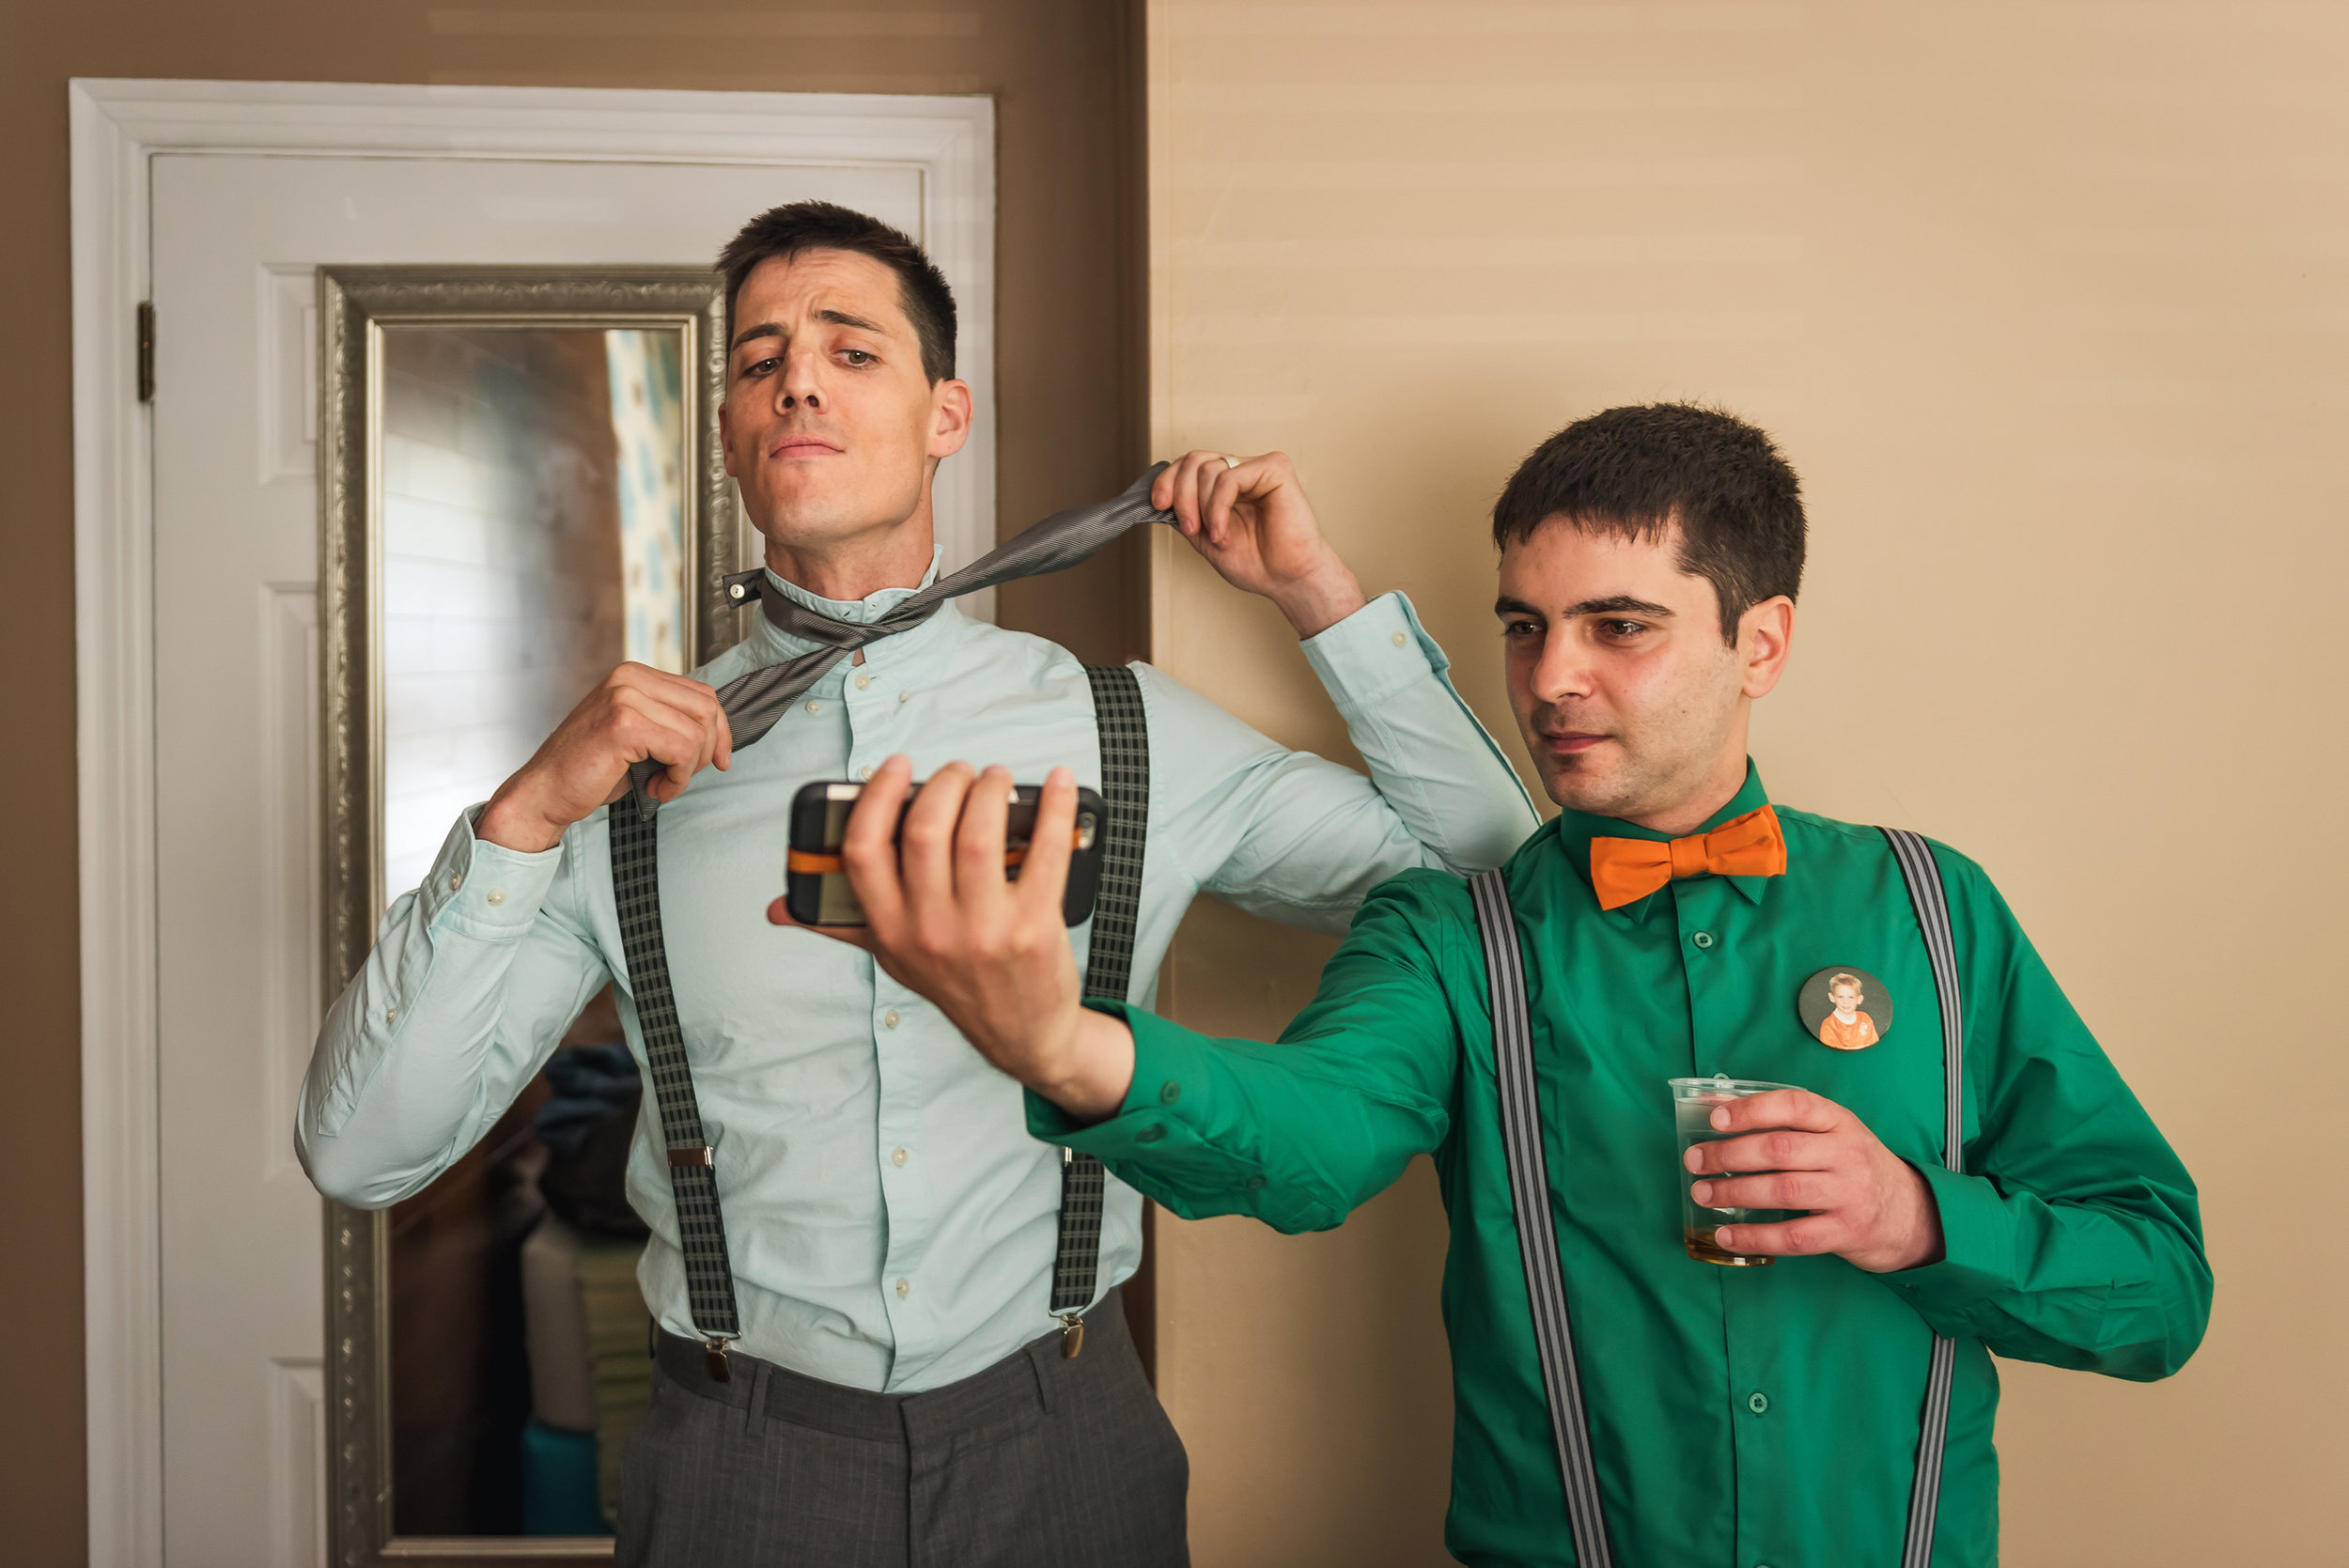 groom-watching-how-to-a-tie-video-while-getting-ready-for-his-museun-of-nature-wedding-in-ottawa-ontario.jpg